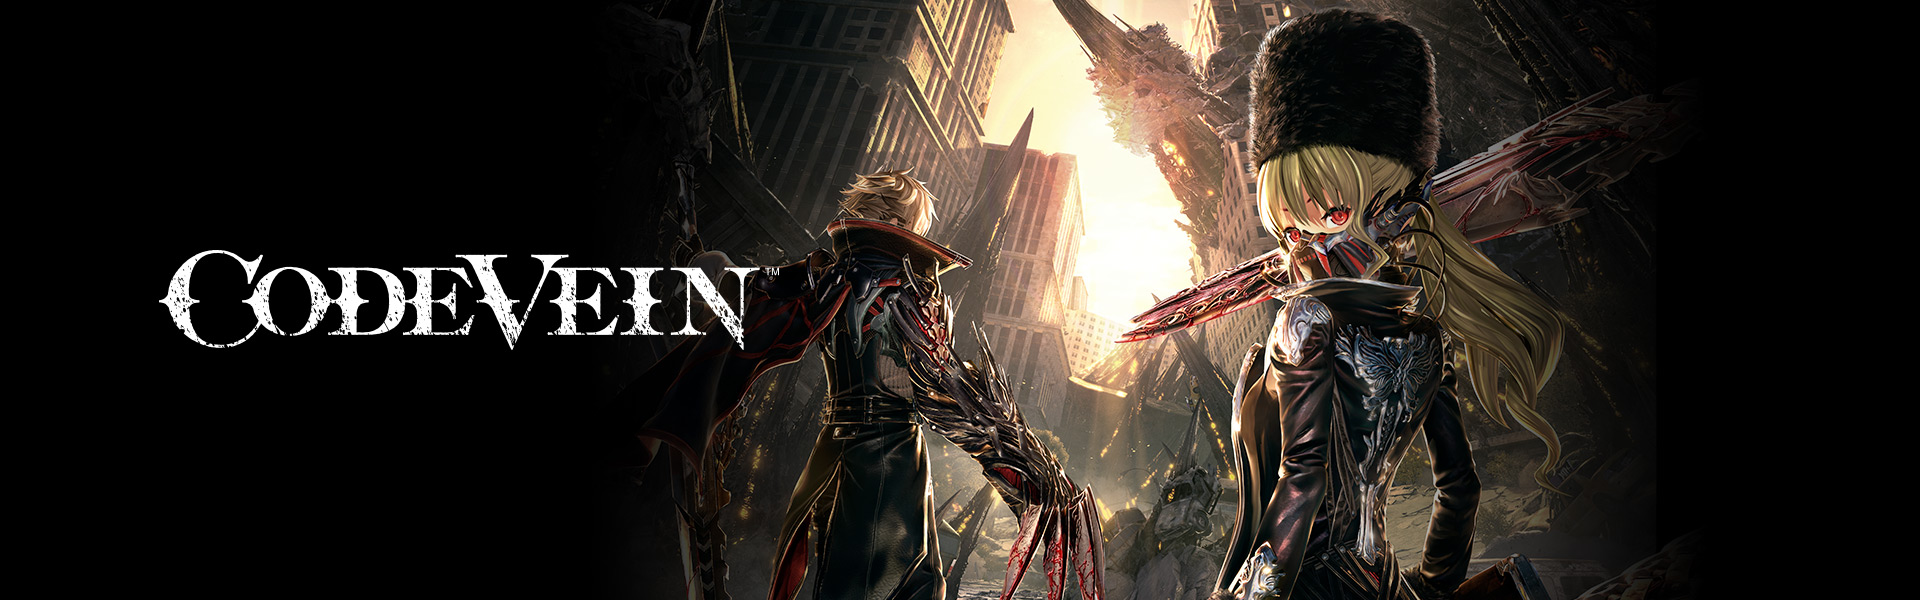 Destaque do Code Vein